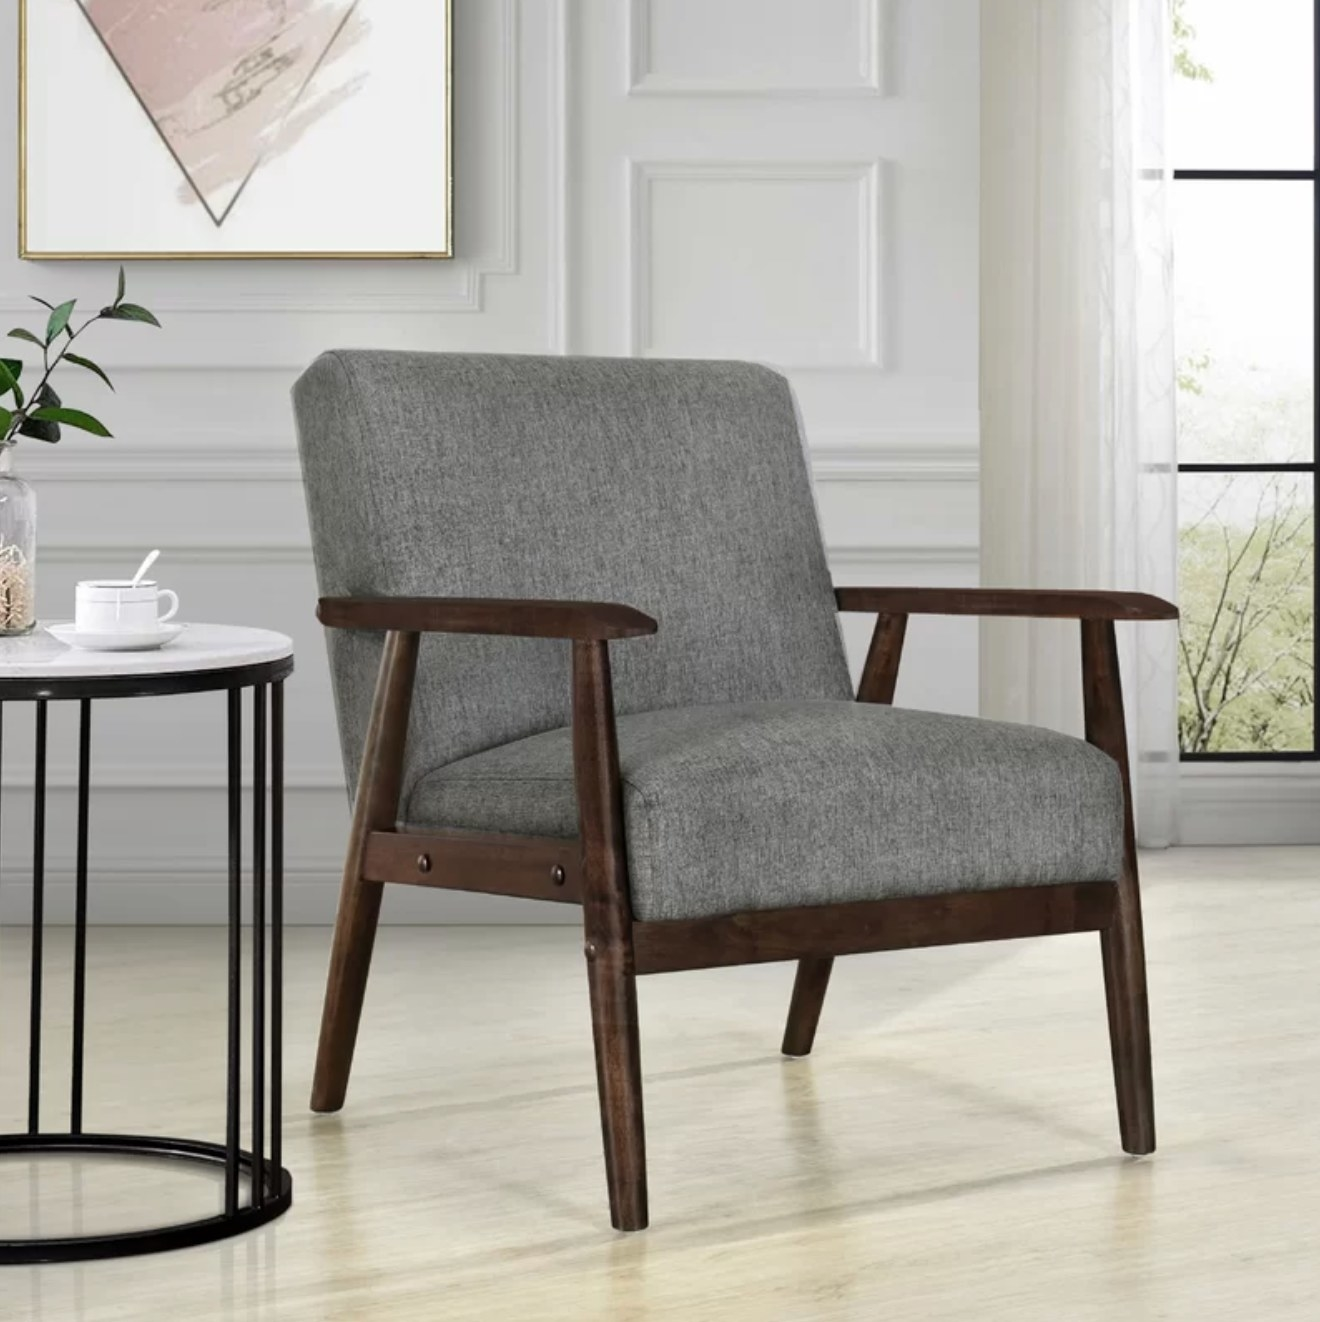 The armchair in gray faux leather